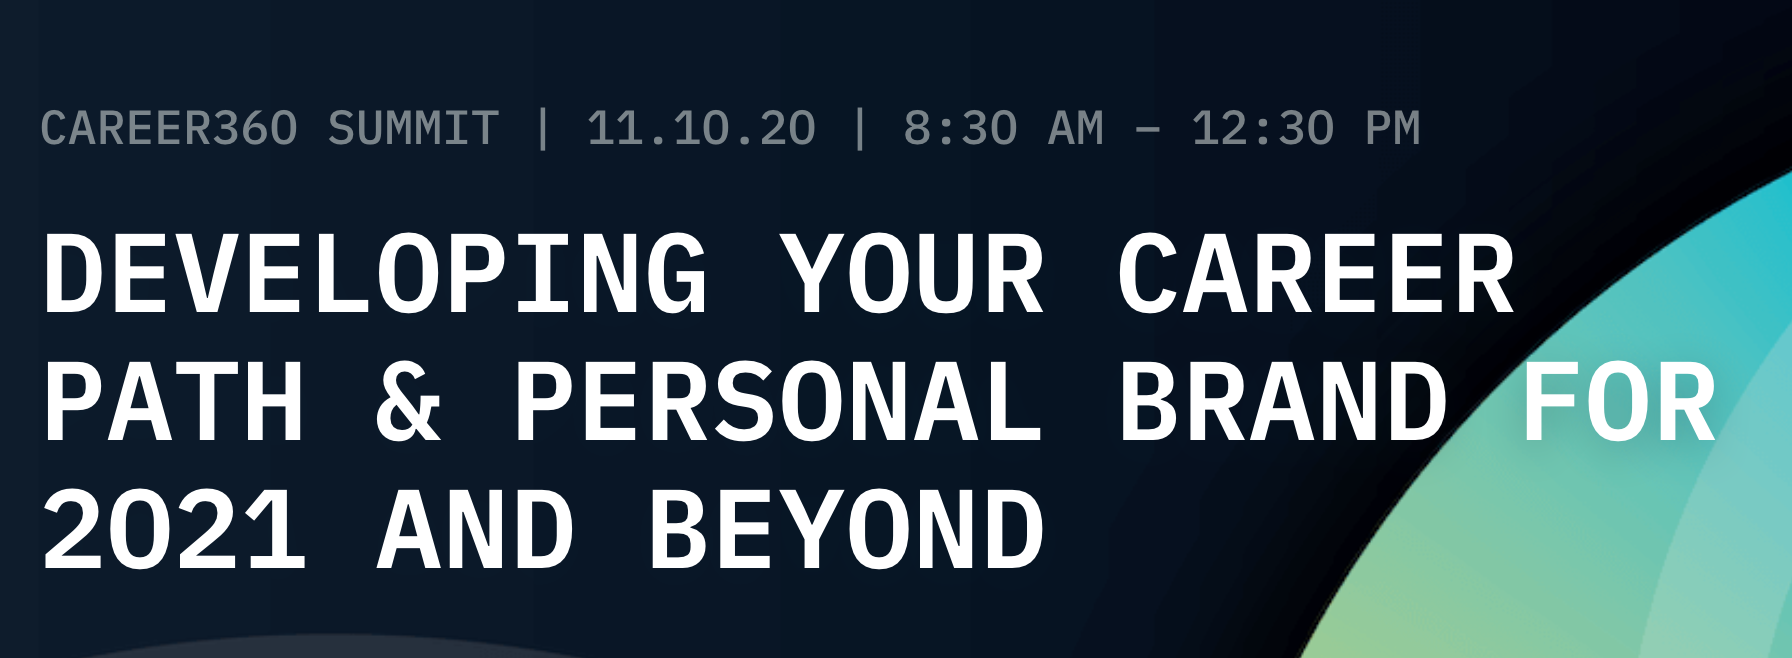 [VIRTUAL] PINTEREST CAREER360 SUMMIT: DEVELOPING YOUR CAREER PATH & PERSONAL BRAND FOR 2021 & BEYOND